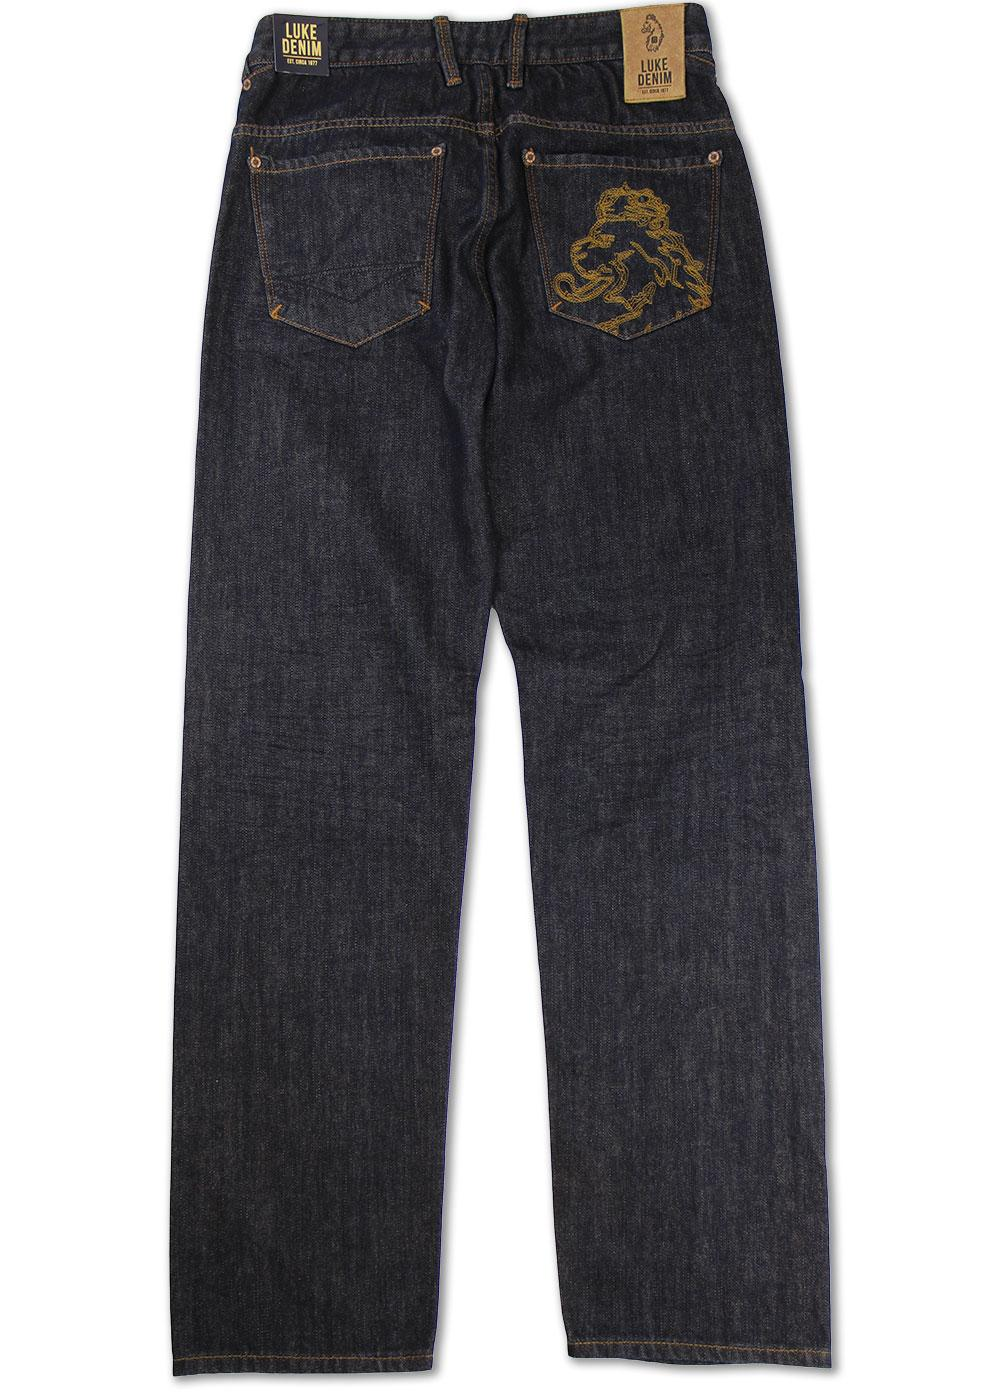 Eddie Lion Luke 1977 Retro Straight Leg Jeans (6M)